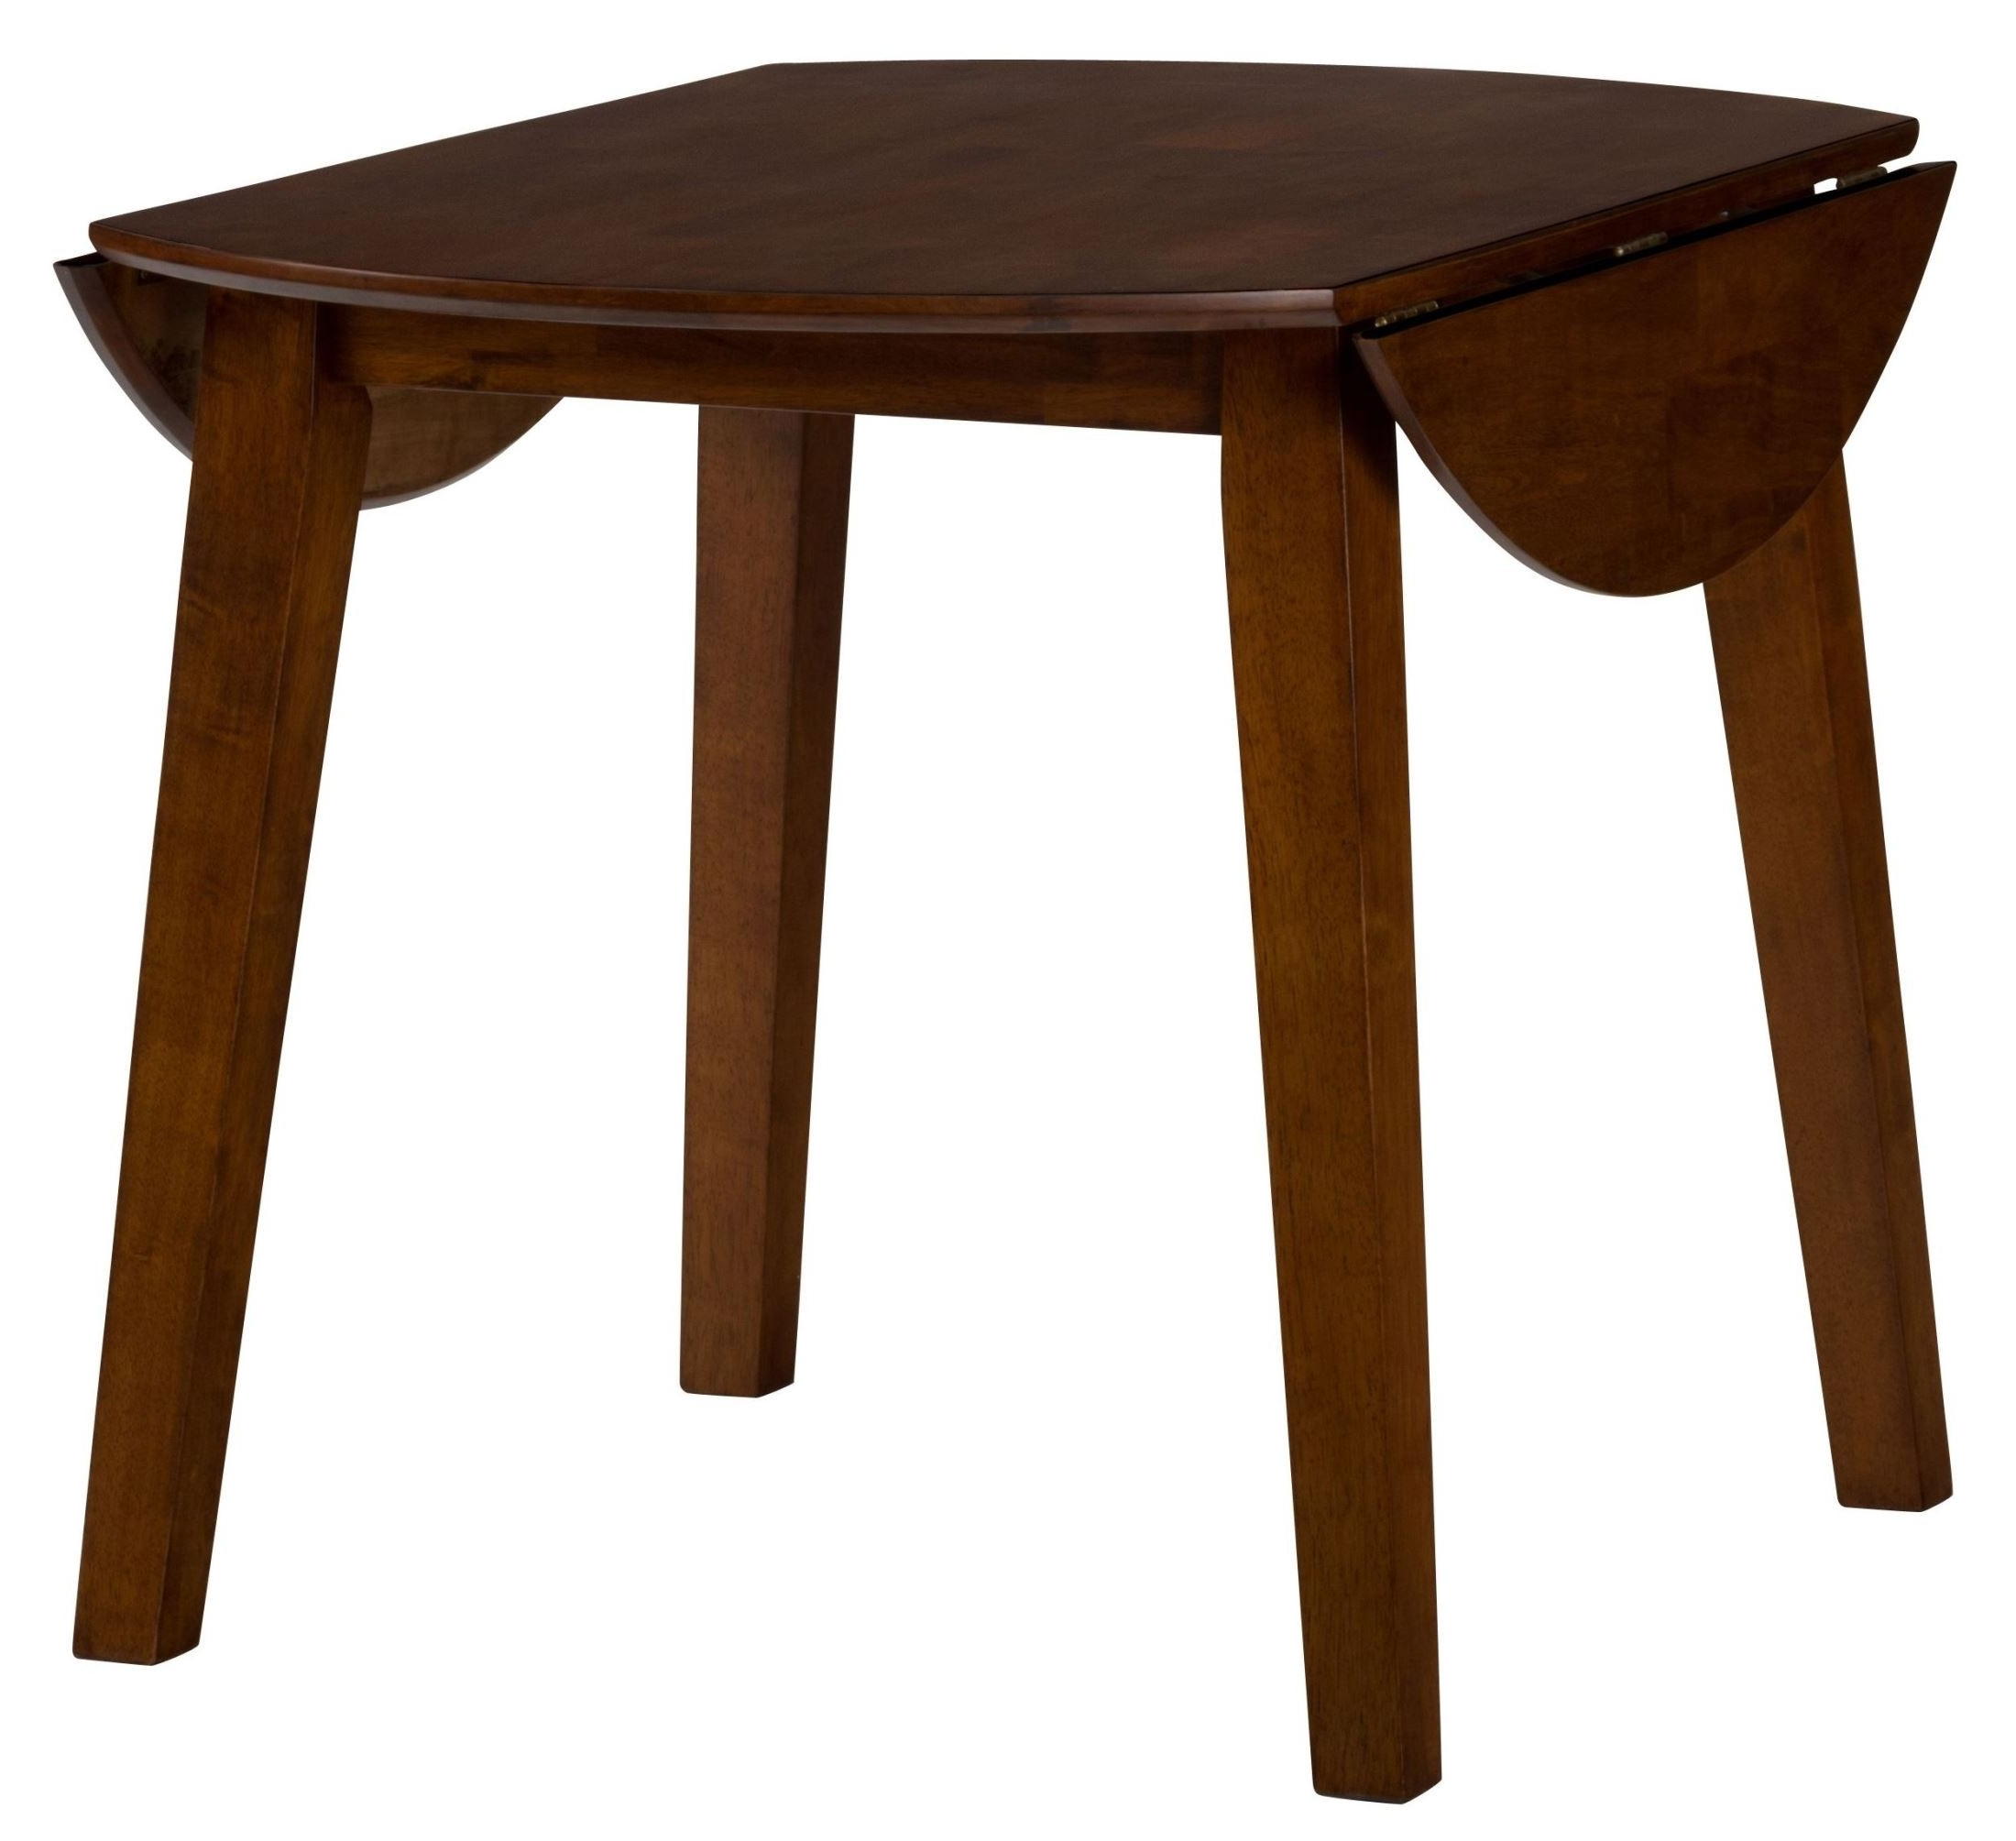 Drop Leaf Extendable Dining Tables In Well Known Jofran Simplicity Caramel Extendable Round Drop Leaf Dining Table (Gallery 8 of 25)